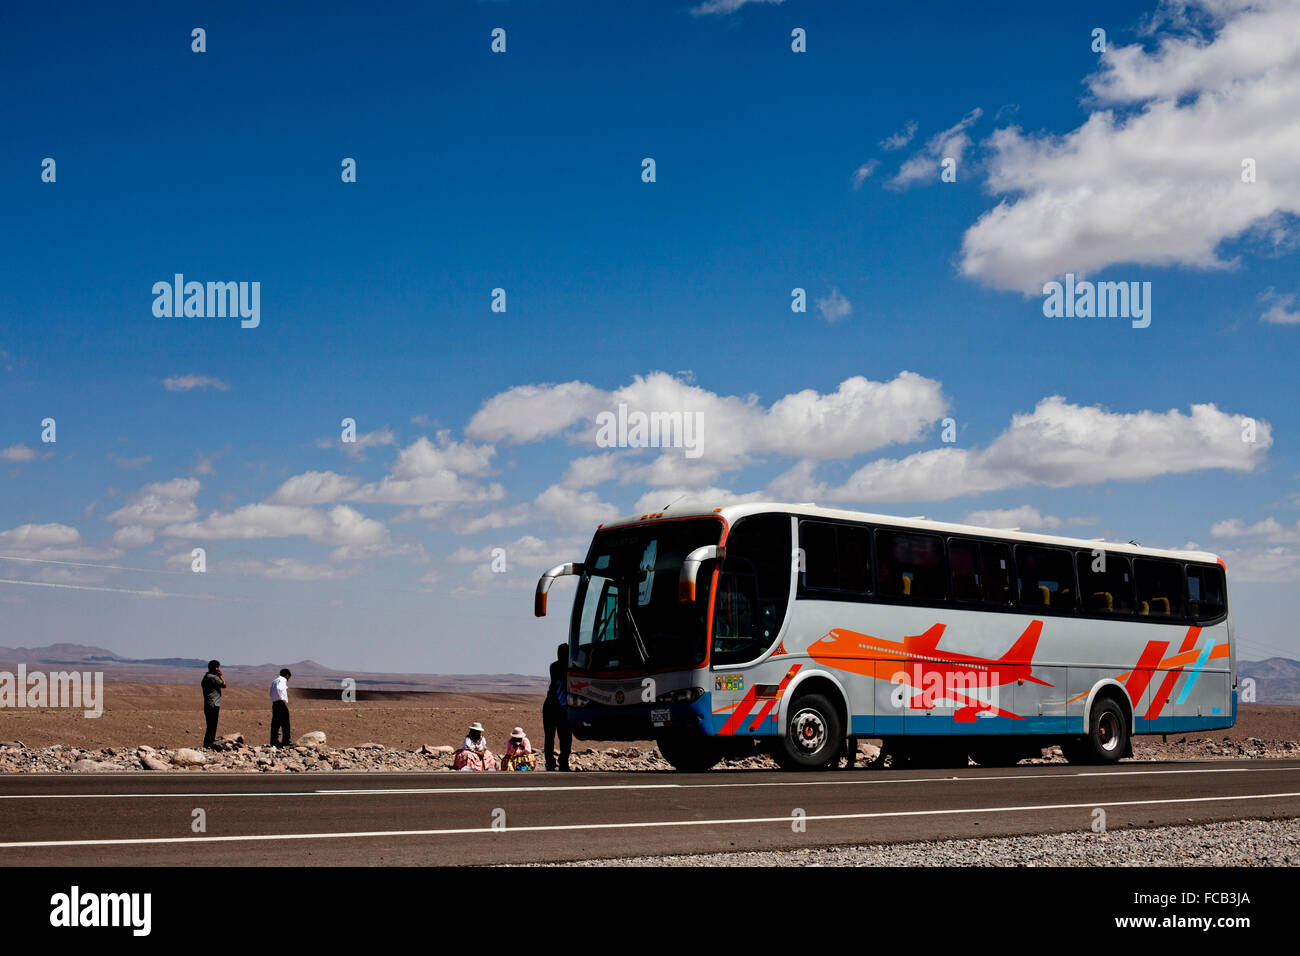 A passenger bus picks up two individuals on the side of the road in the Atacama Desert in Bolivia. - Stock Image